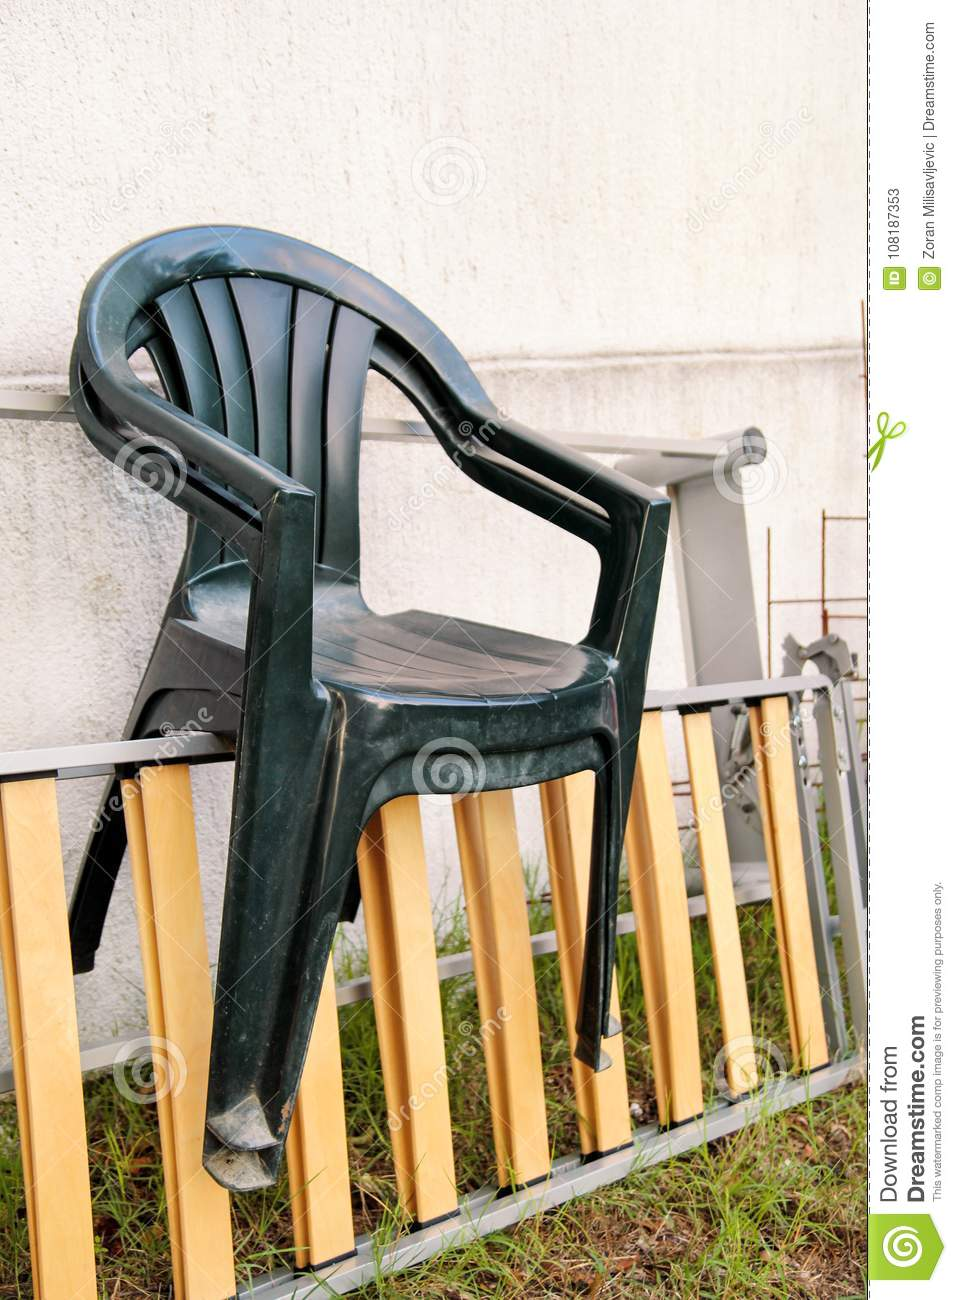 Green Plastic Garden Chairs Thrown Away And Left On A Ladder By